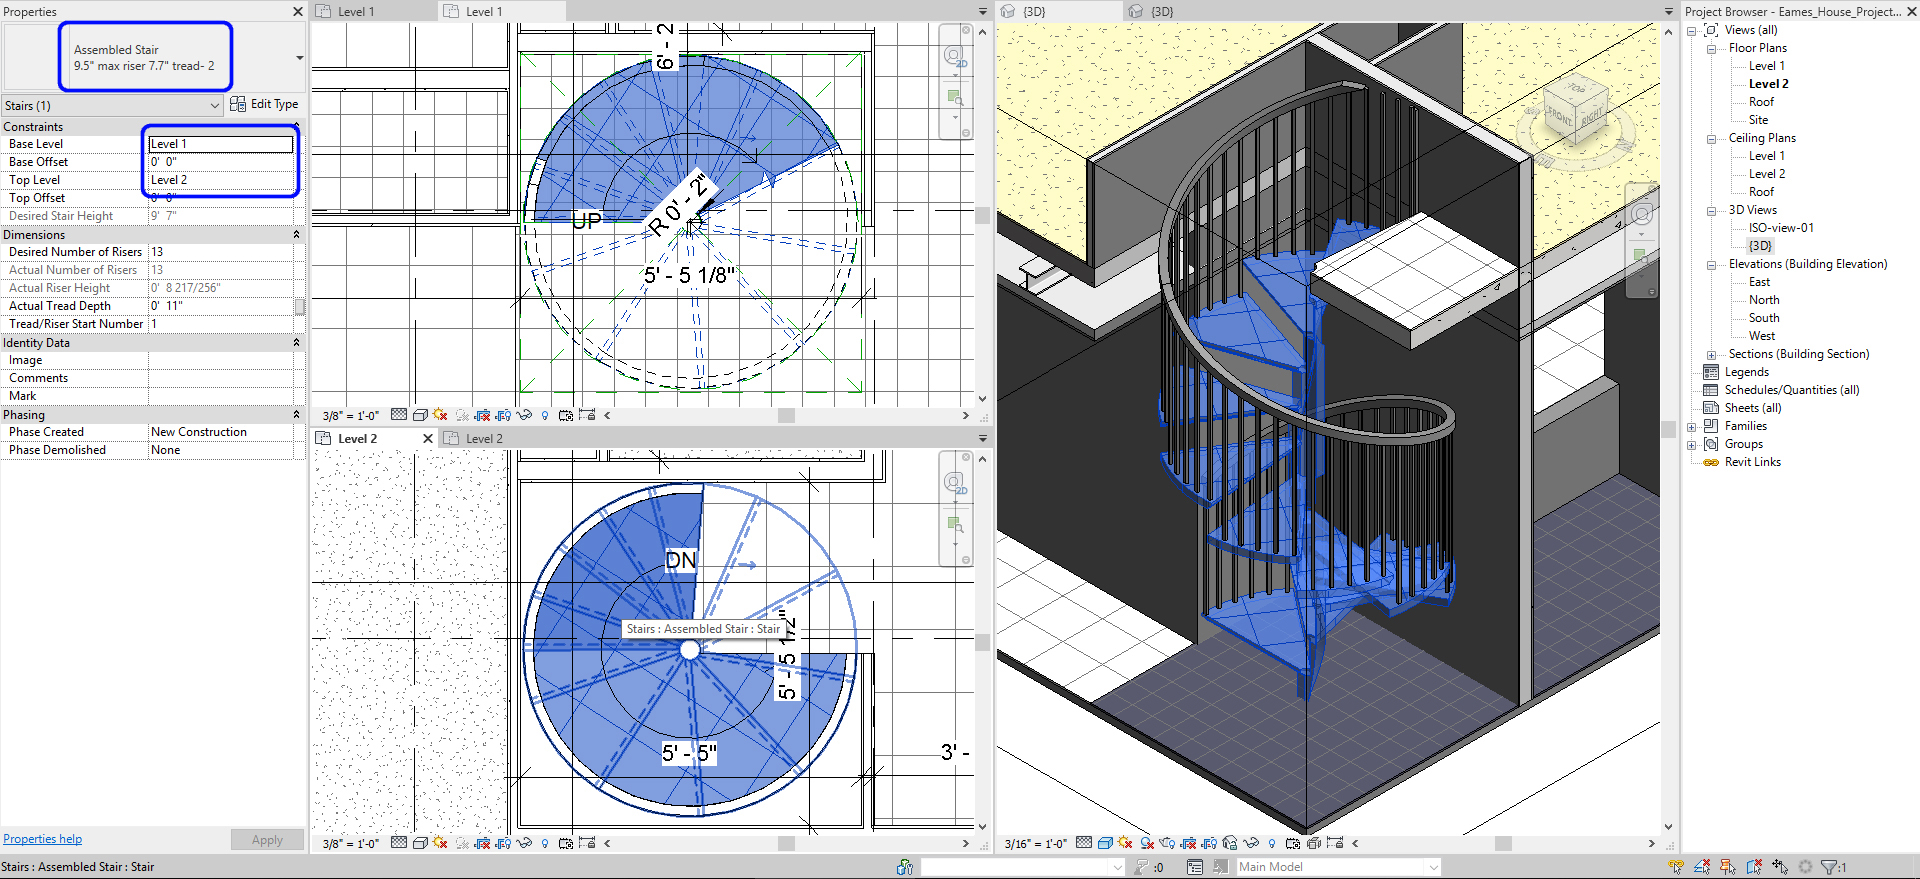 It shows the resulting image for the spiral stair for Eames House.